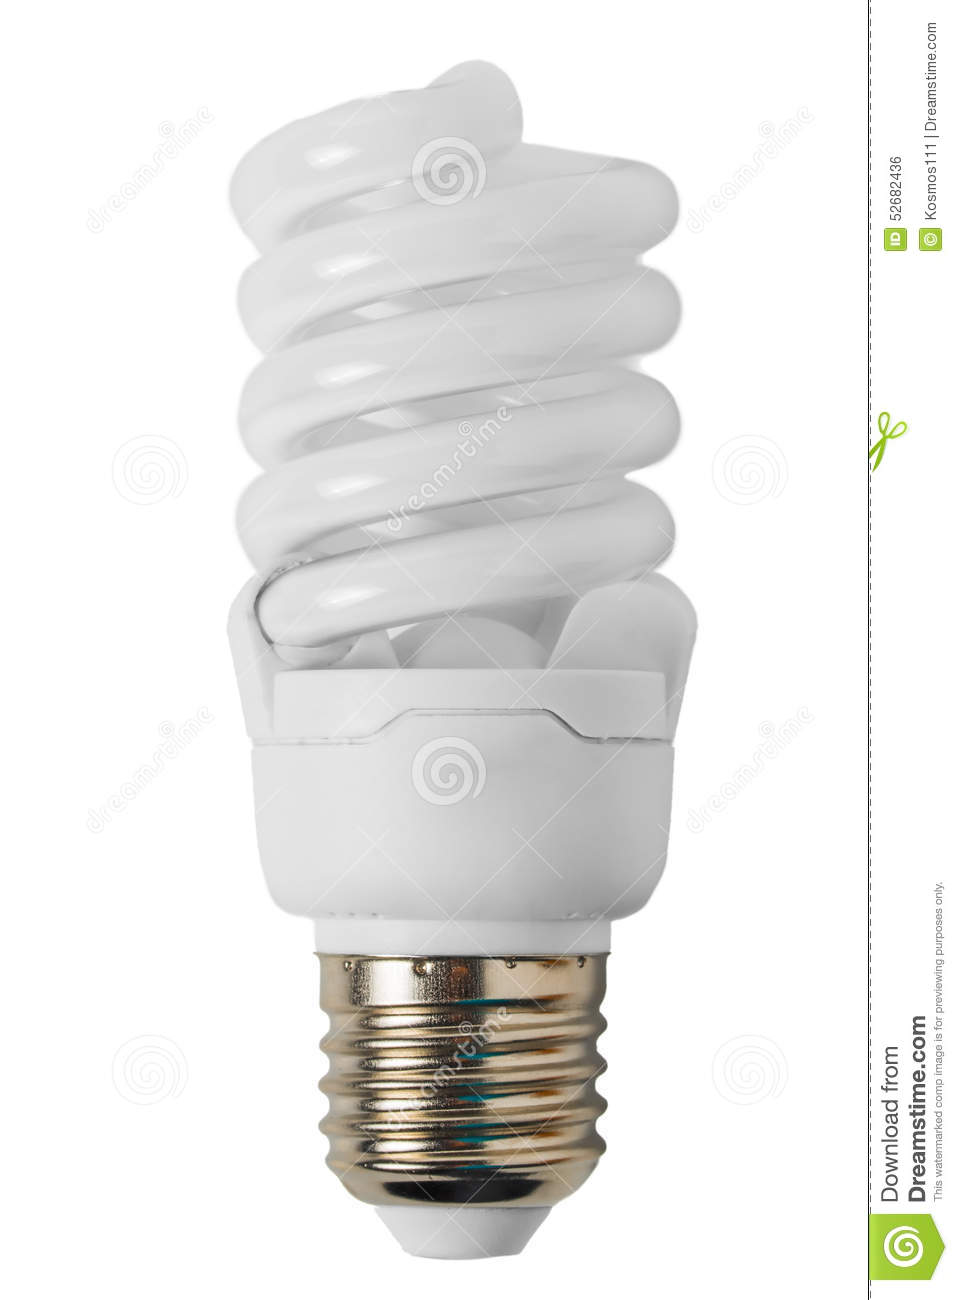 Energy saving light bulb in the form of a spiral